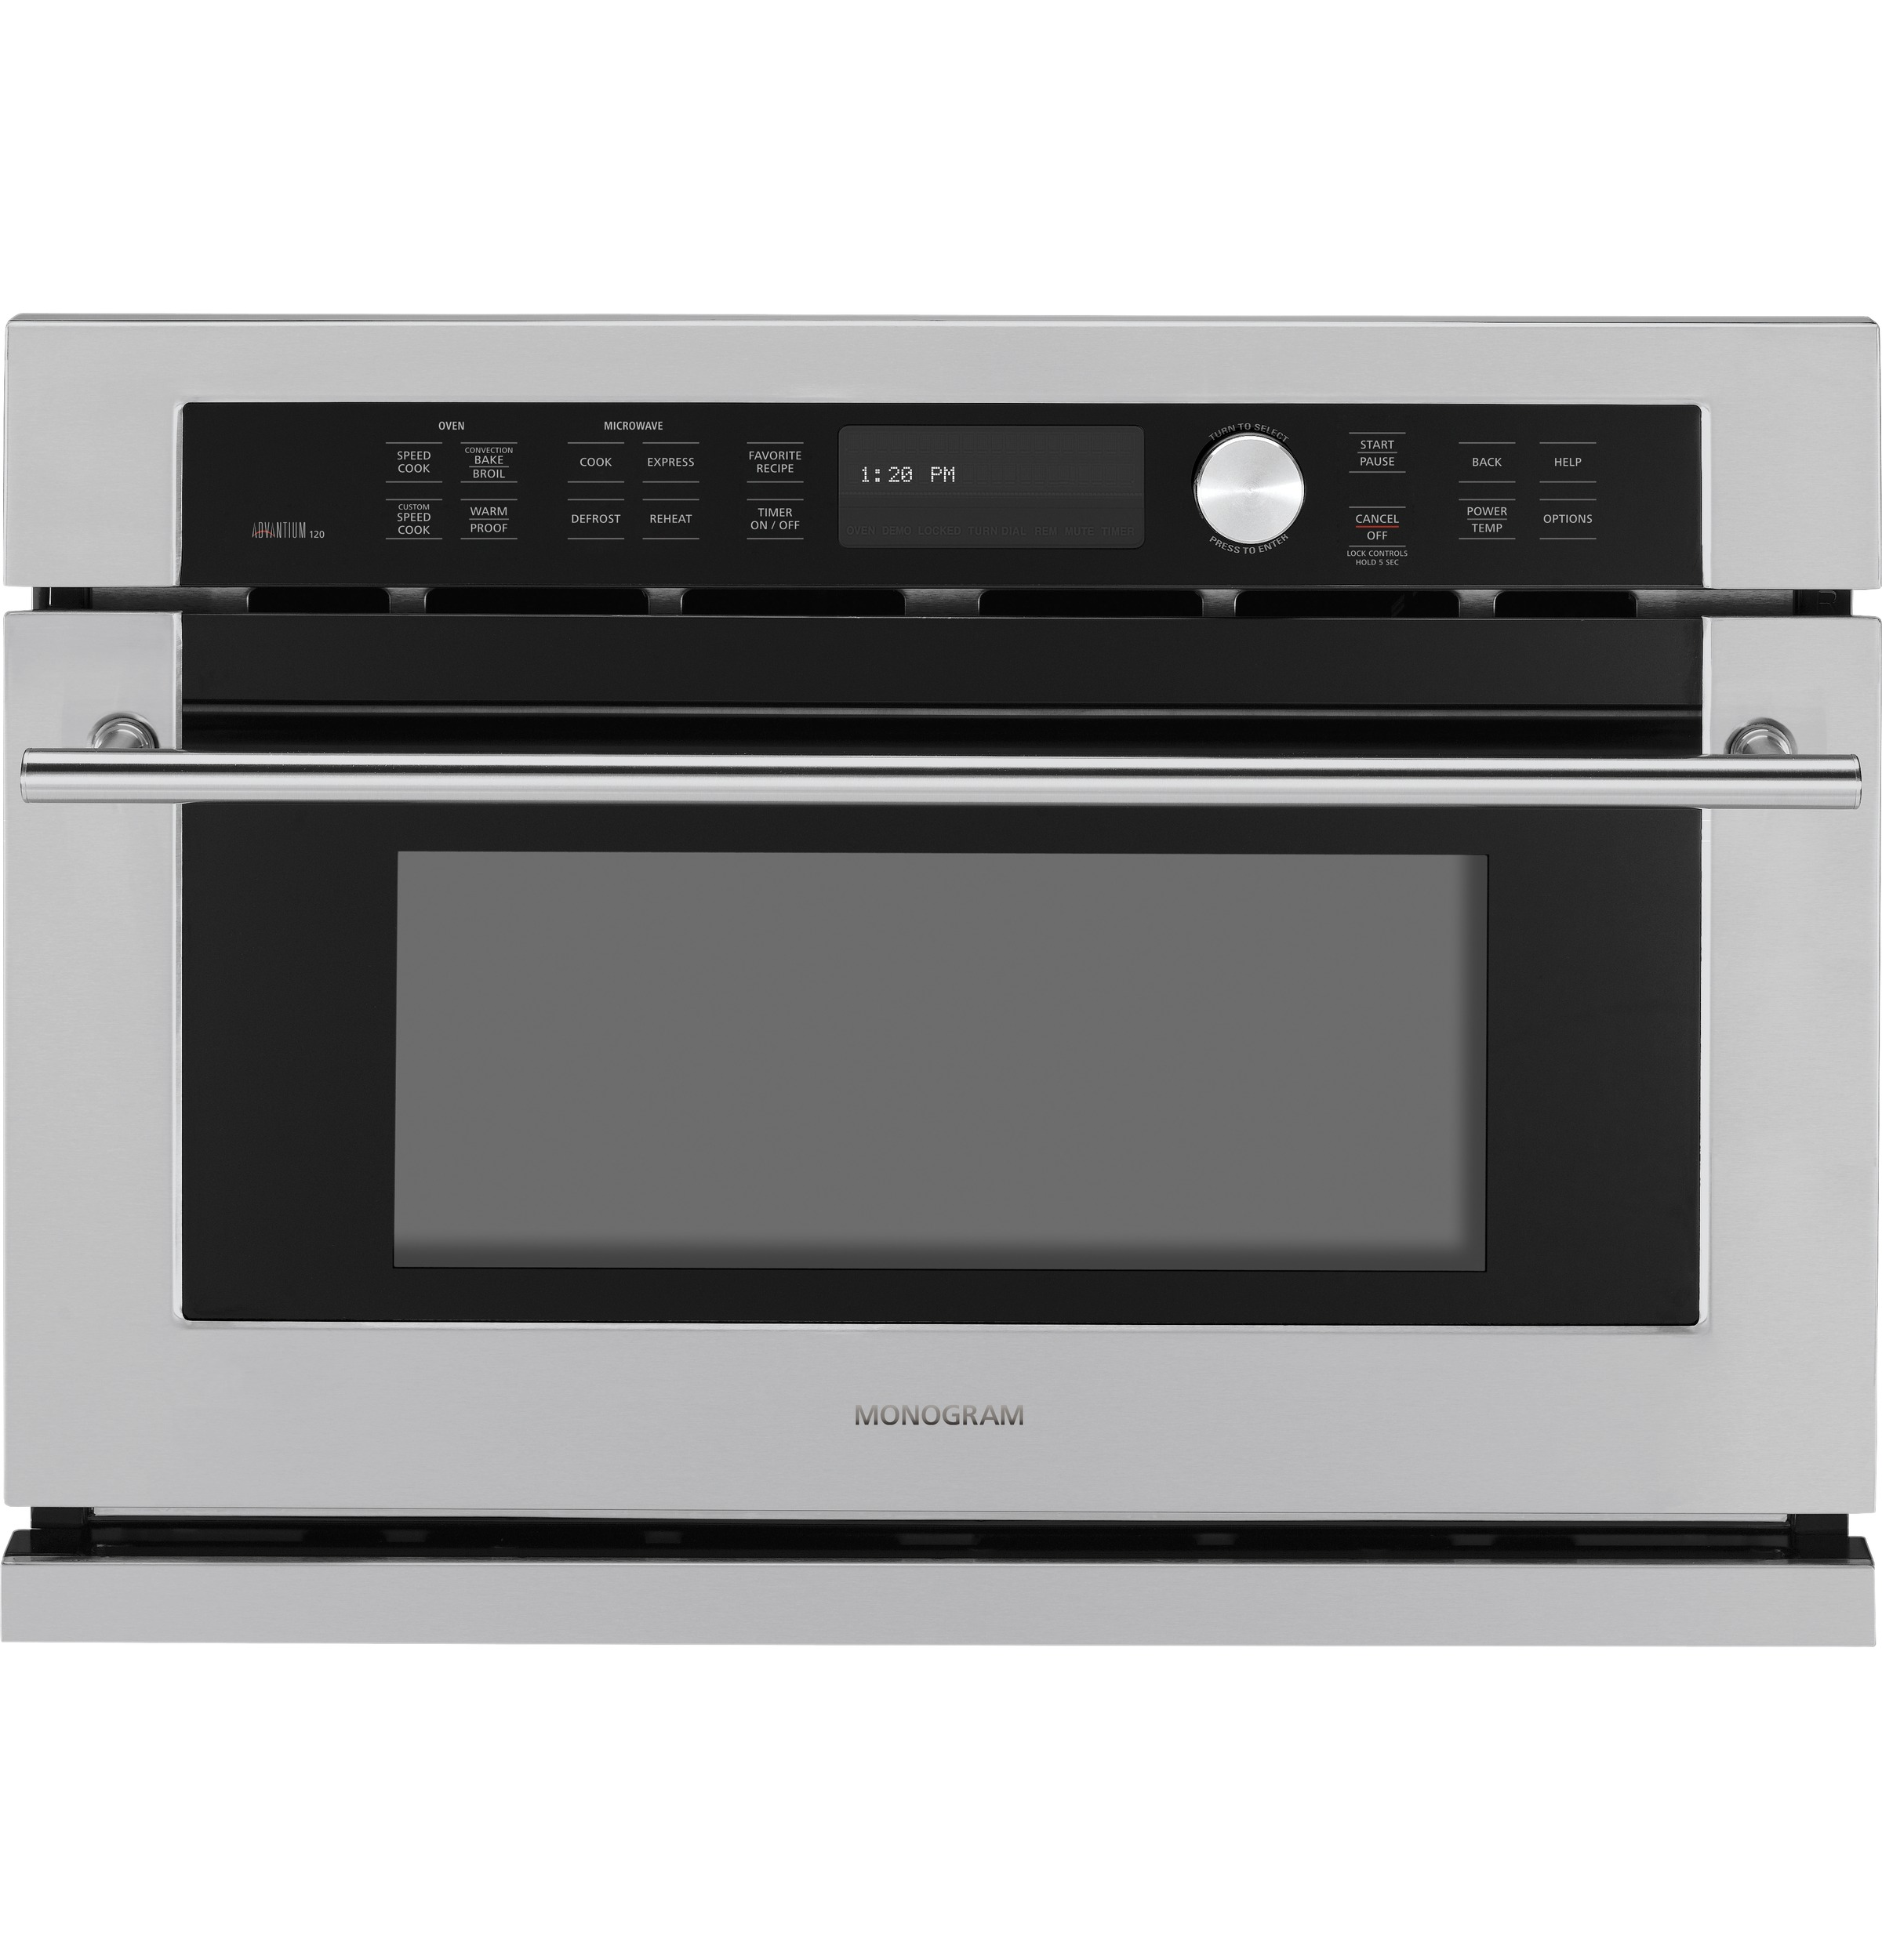 Monogram Monogram Built-In Oven with Advantium® Speedcook Technology- 120V